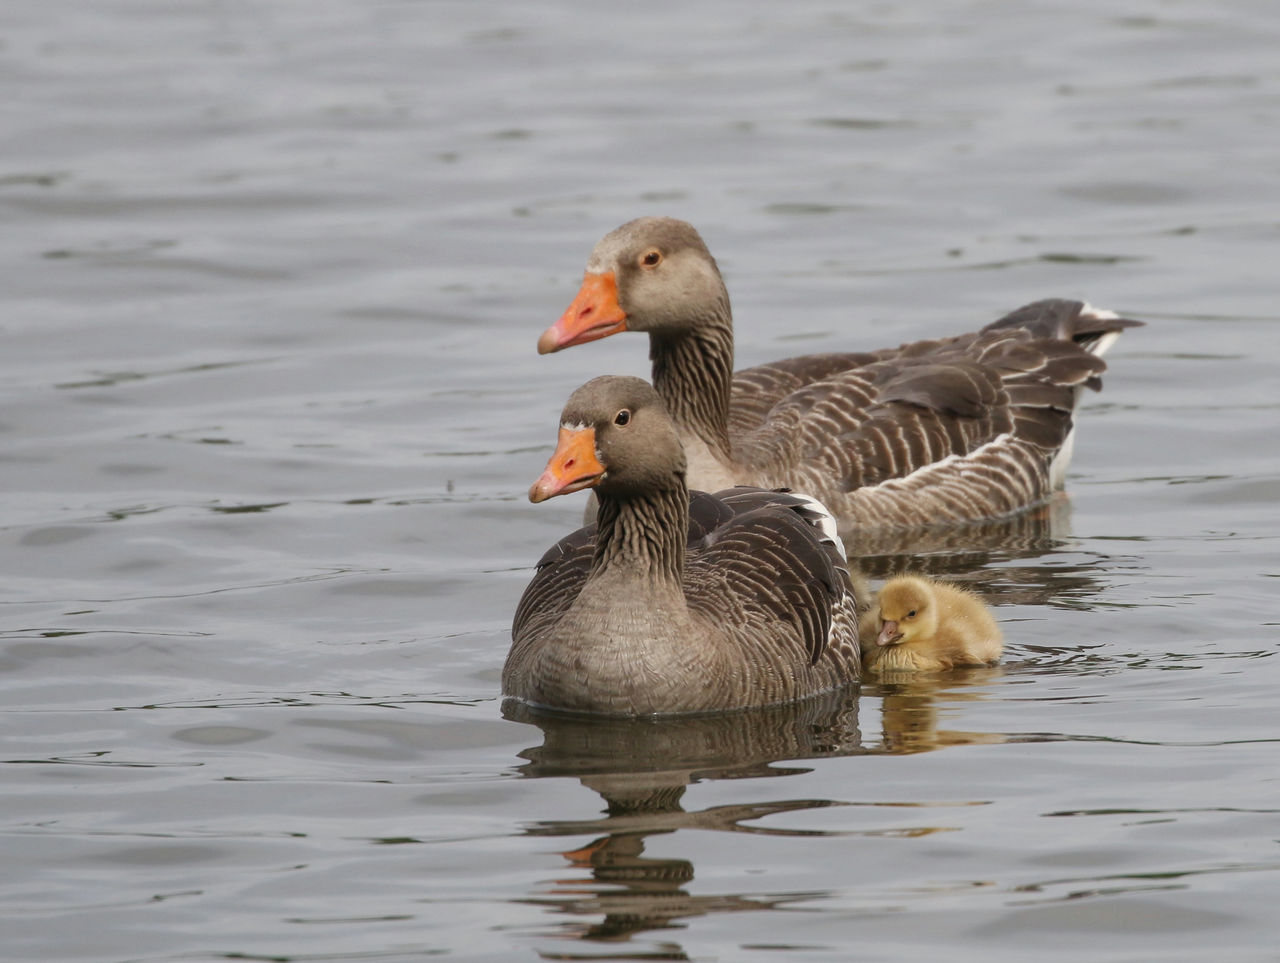 bird, animal wildlife, animal themes, animals in the wild, animal, vertebrate, swimming, group of animals, water, waterfront, lake, no people, greylag goose, water bird, nature, day, two animals, goose, beauty in nature, animal family, gosling